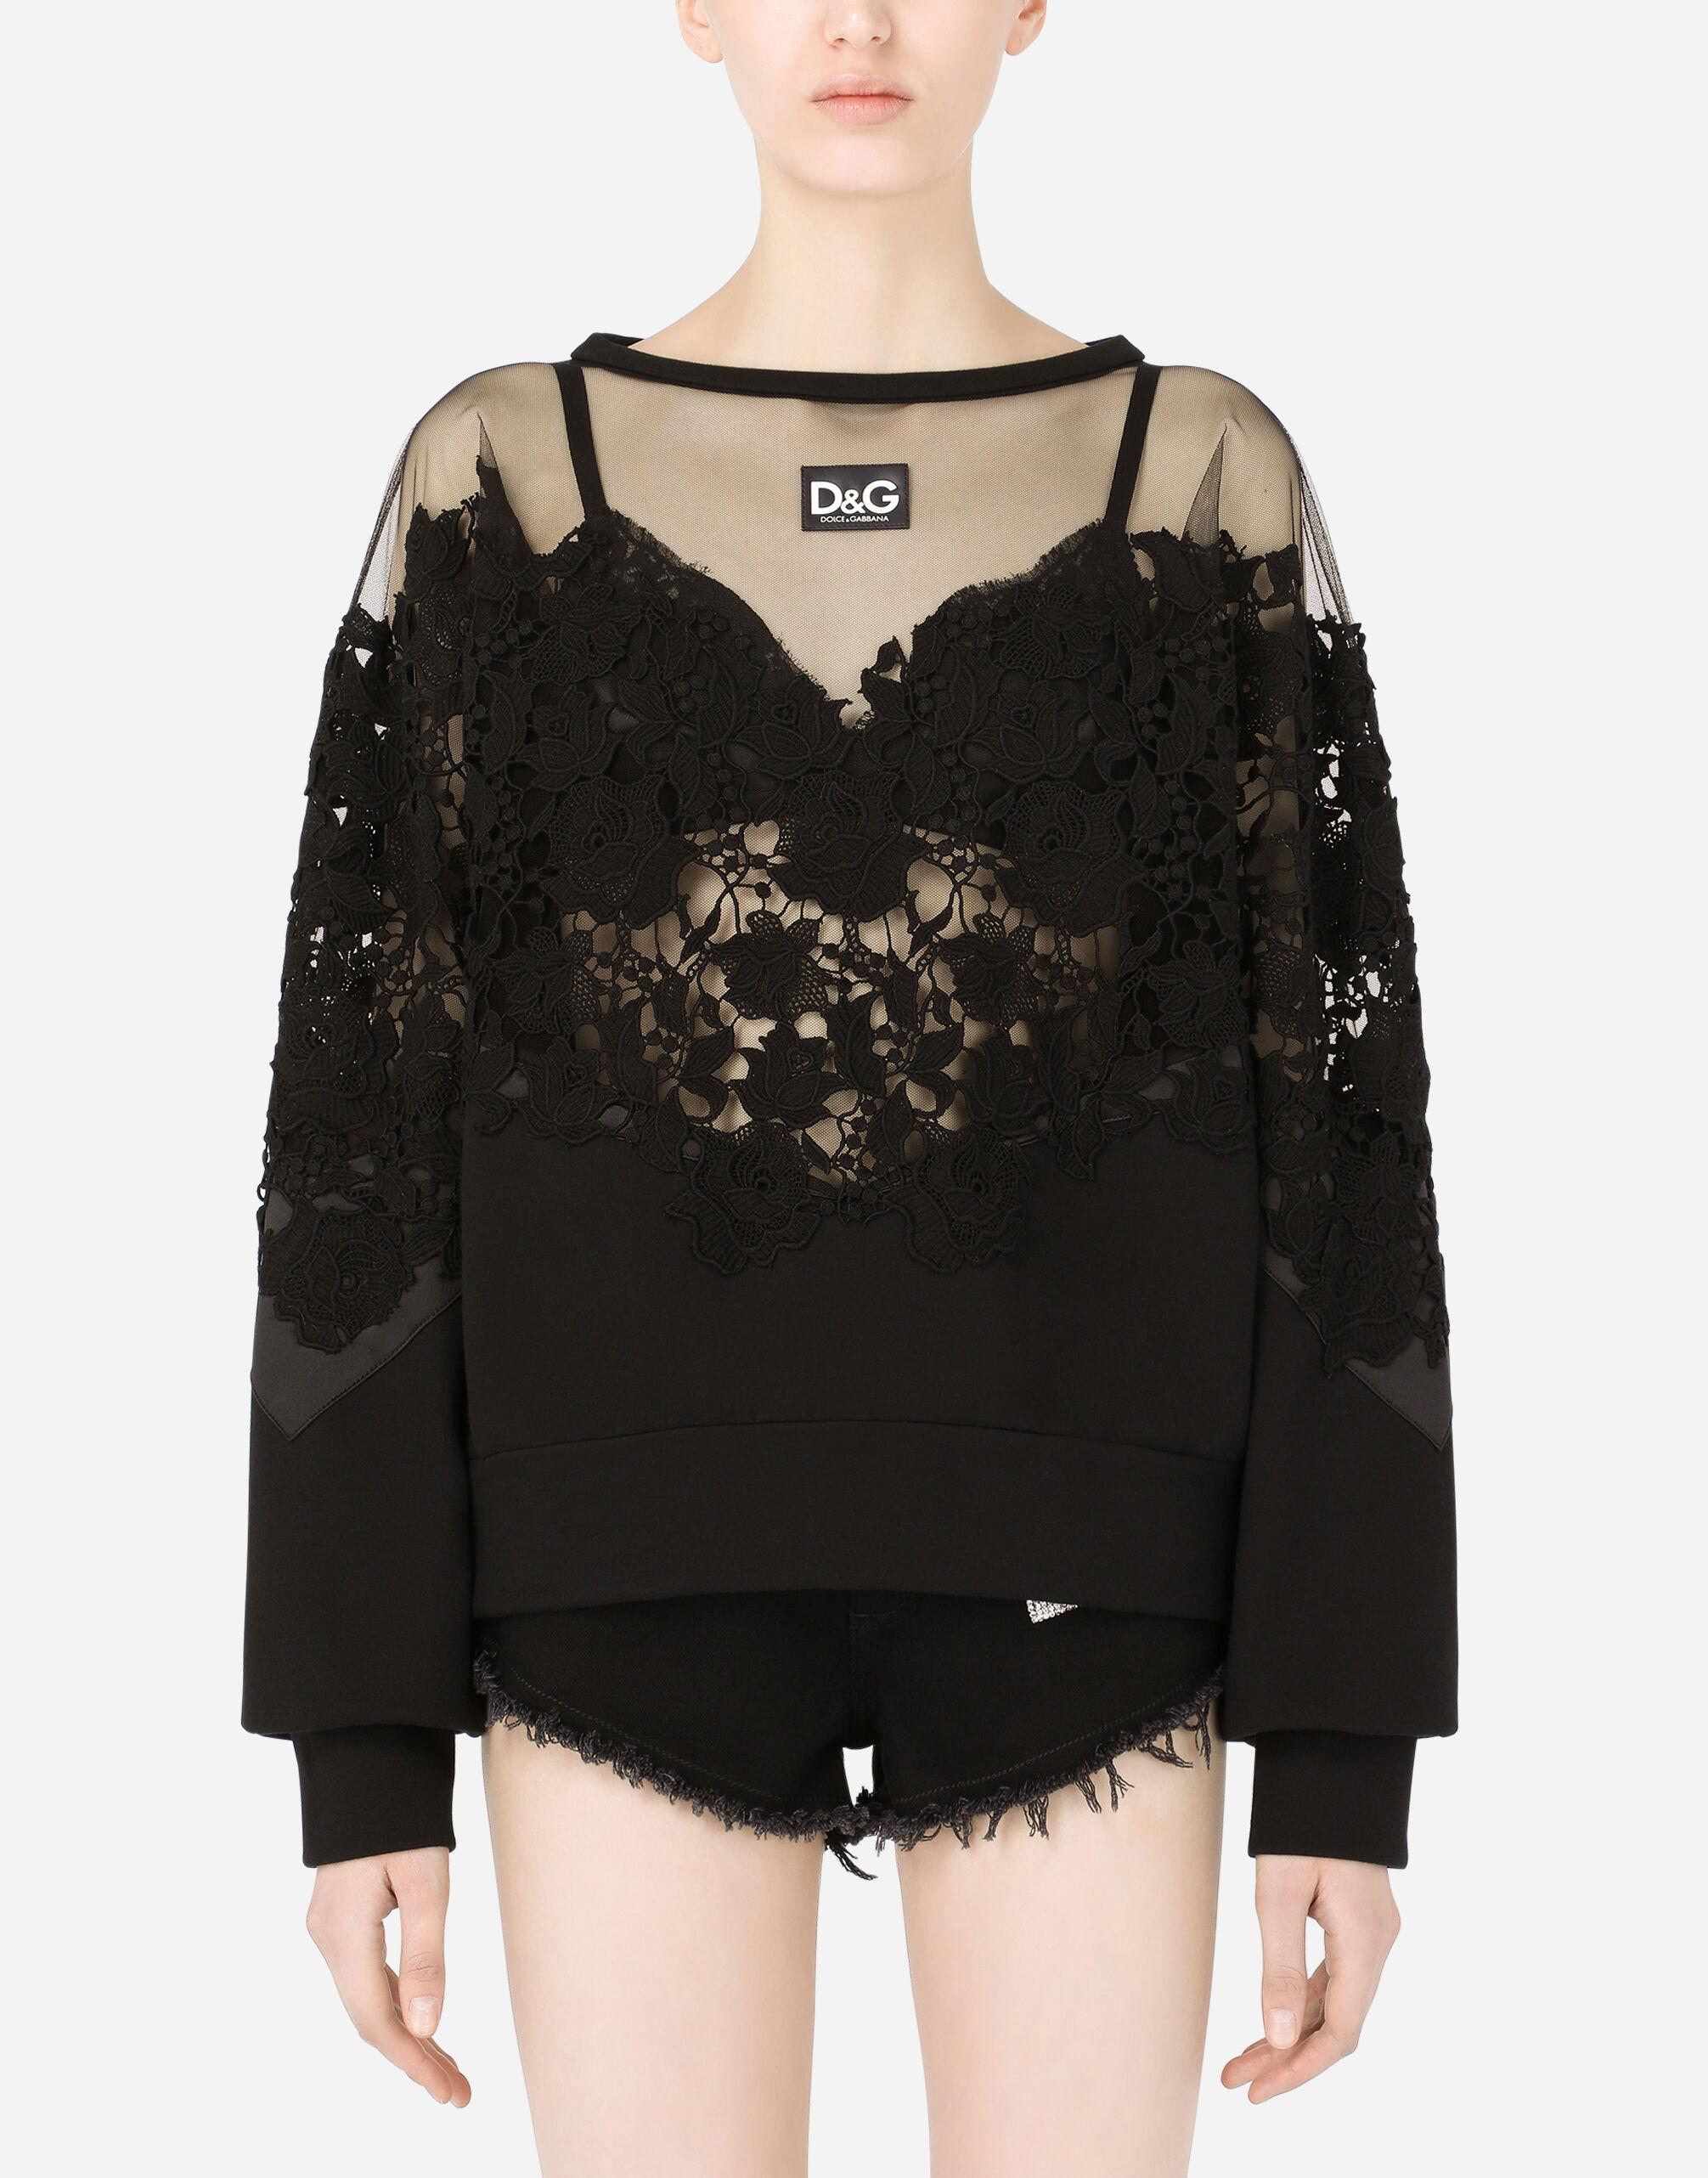 Jersey sweatshirt with tulle and macramé details